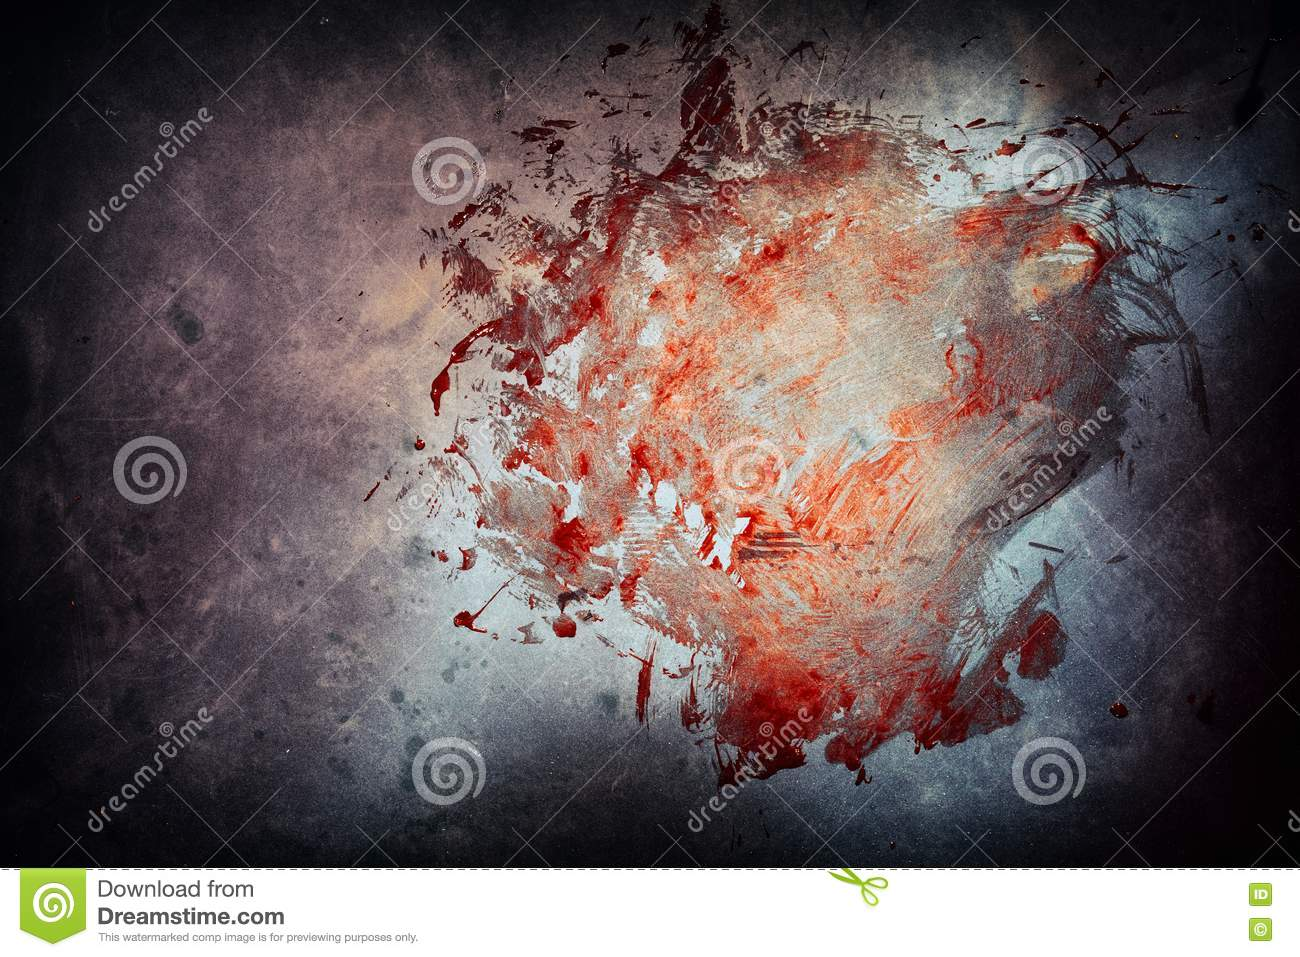 Large bloody smear on cement at a crime scene